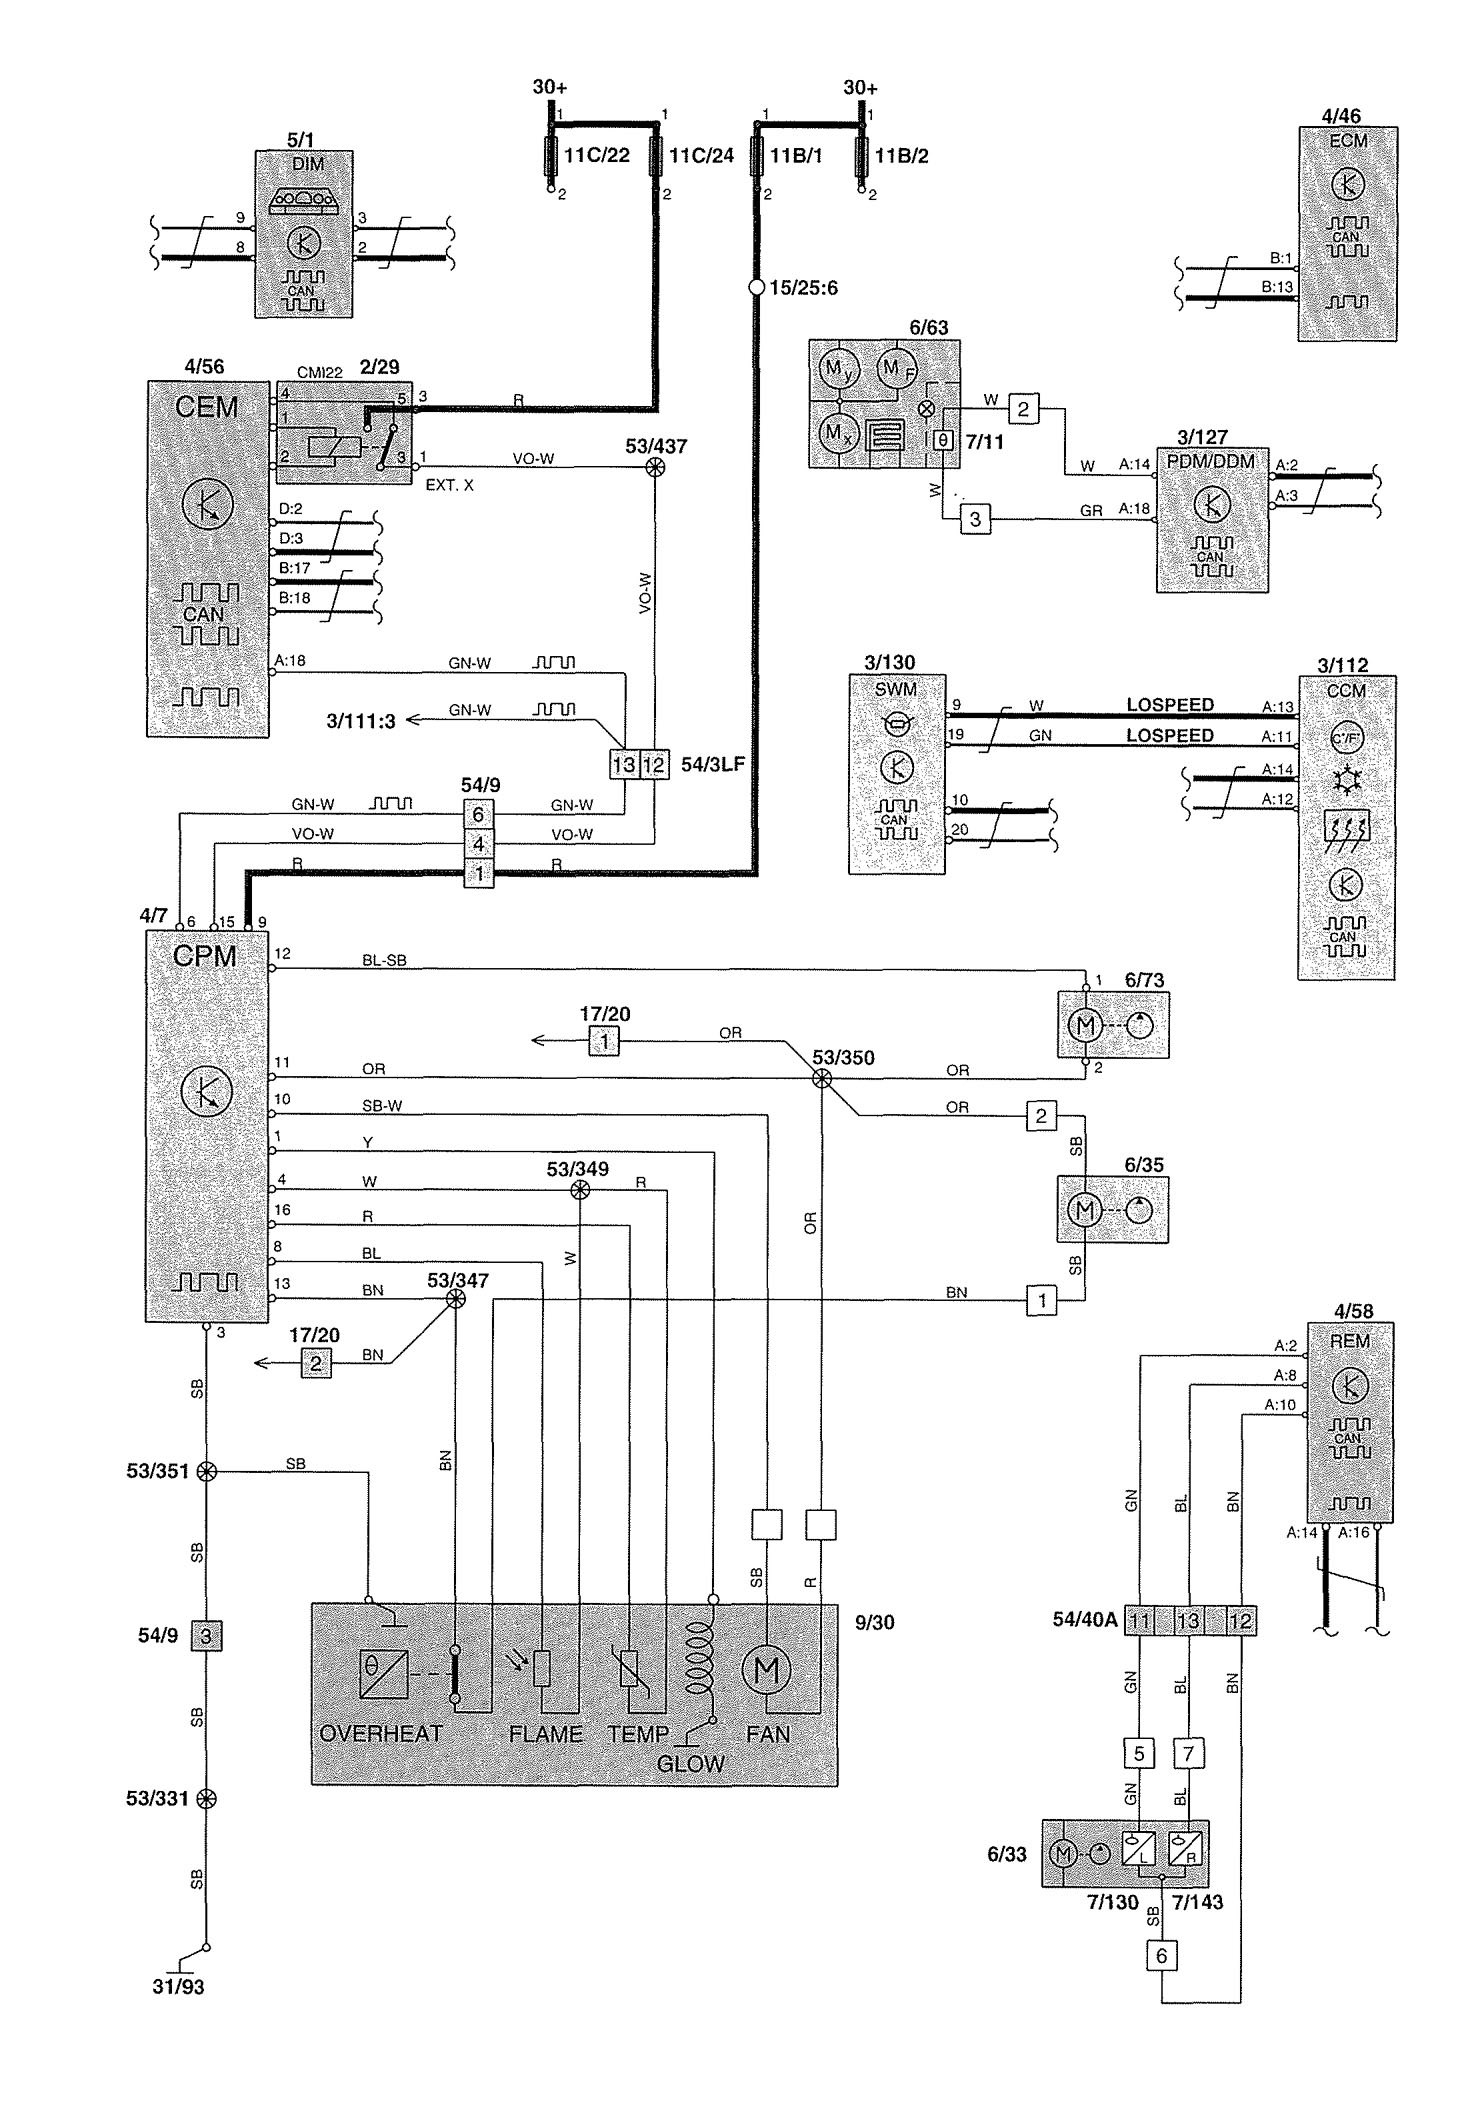 2000 Volvo S70 Wiring Diagram Fuse Box Under Dash And Alarm ... on